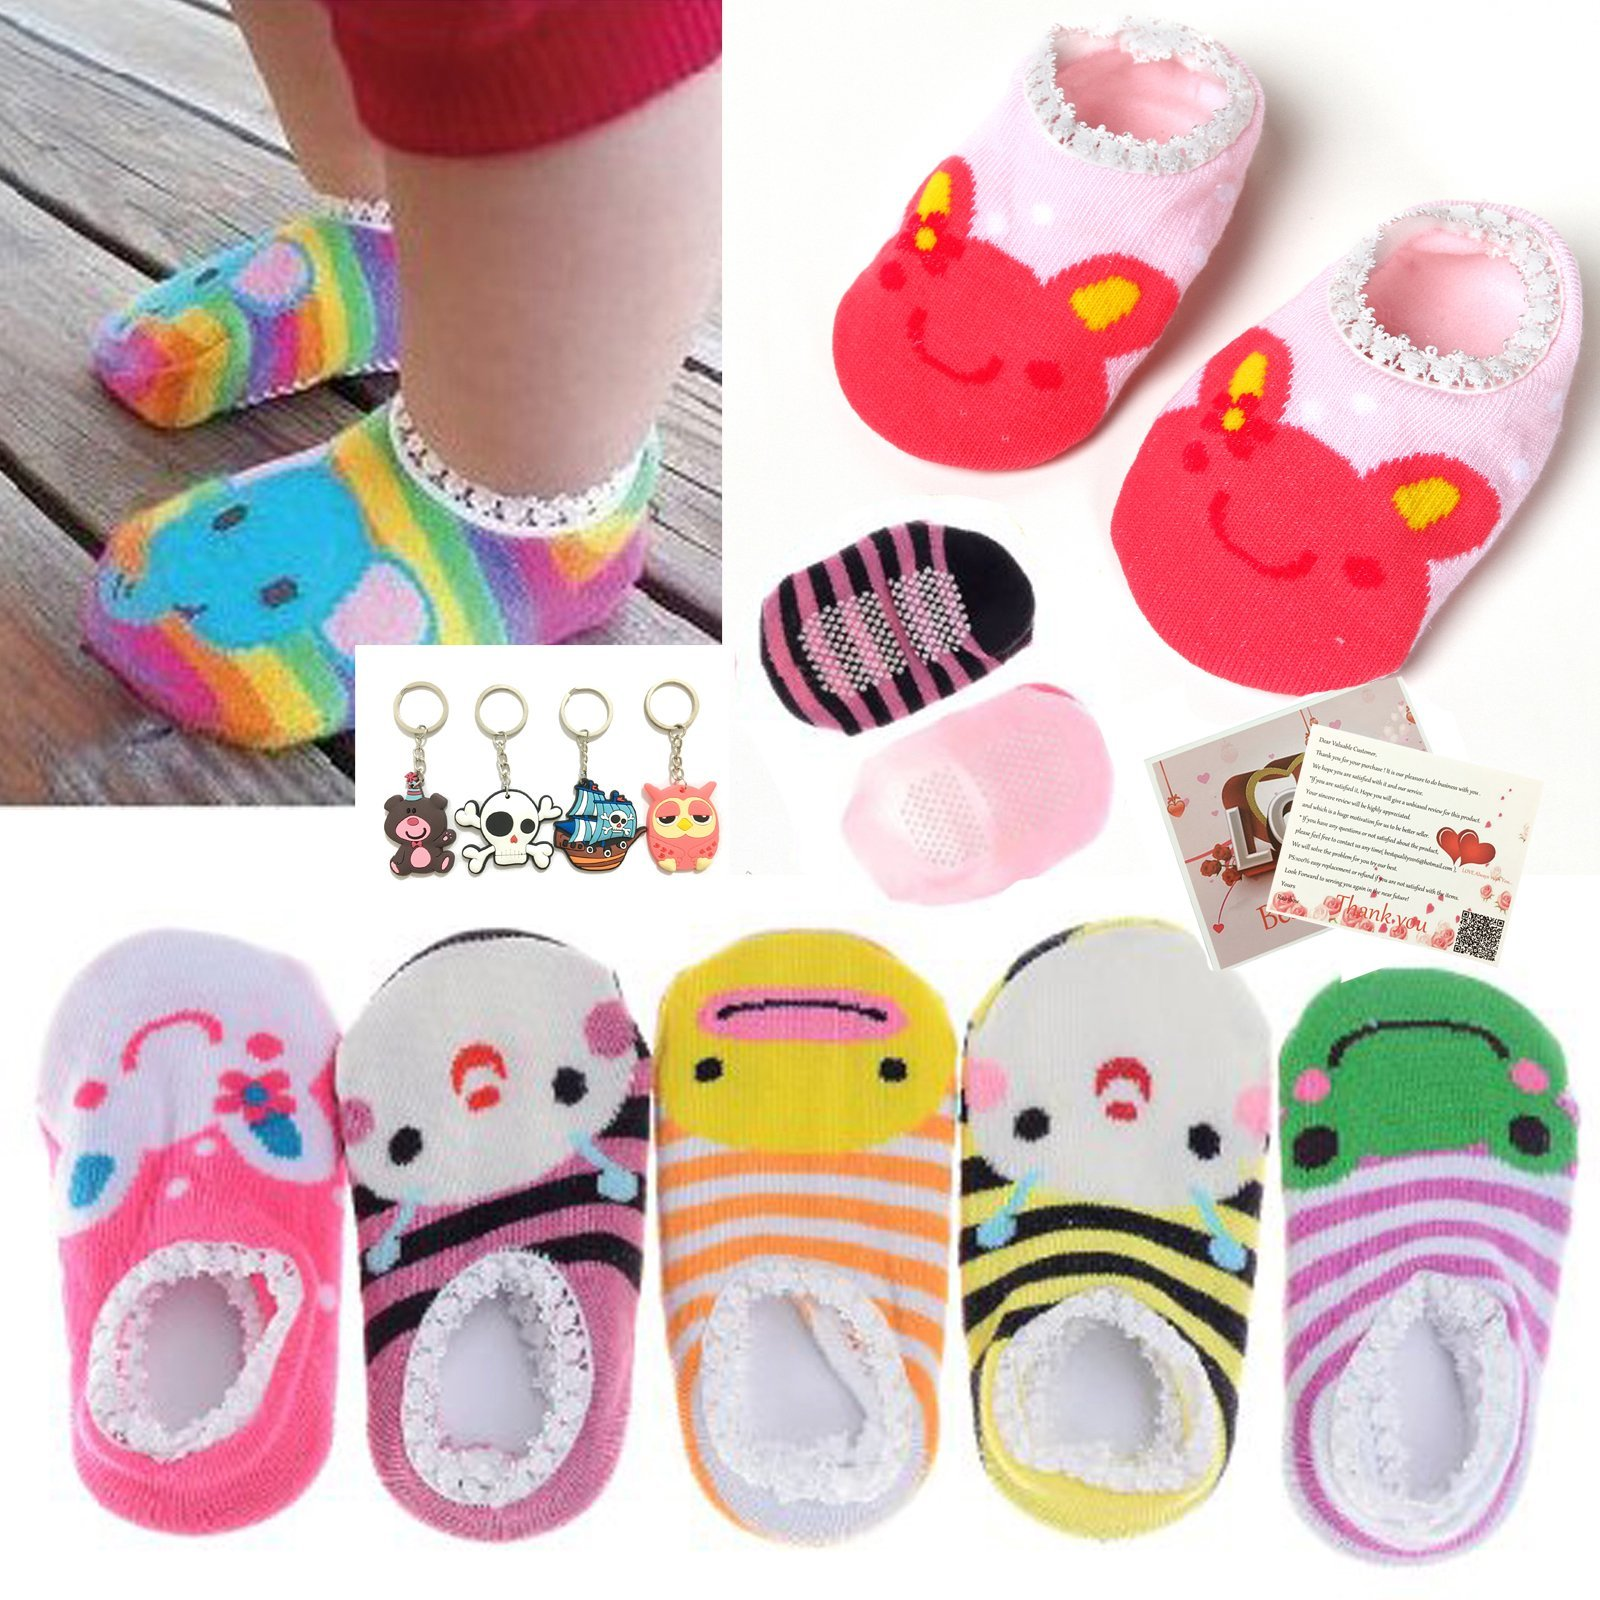 Fly-love 5 Pairs Cute Baby Toddler Stripes Anti Slip Skid Socks No-Show Crew Boat Sock For 6-18 month